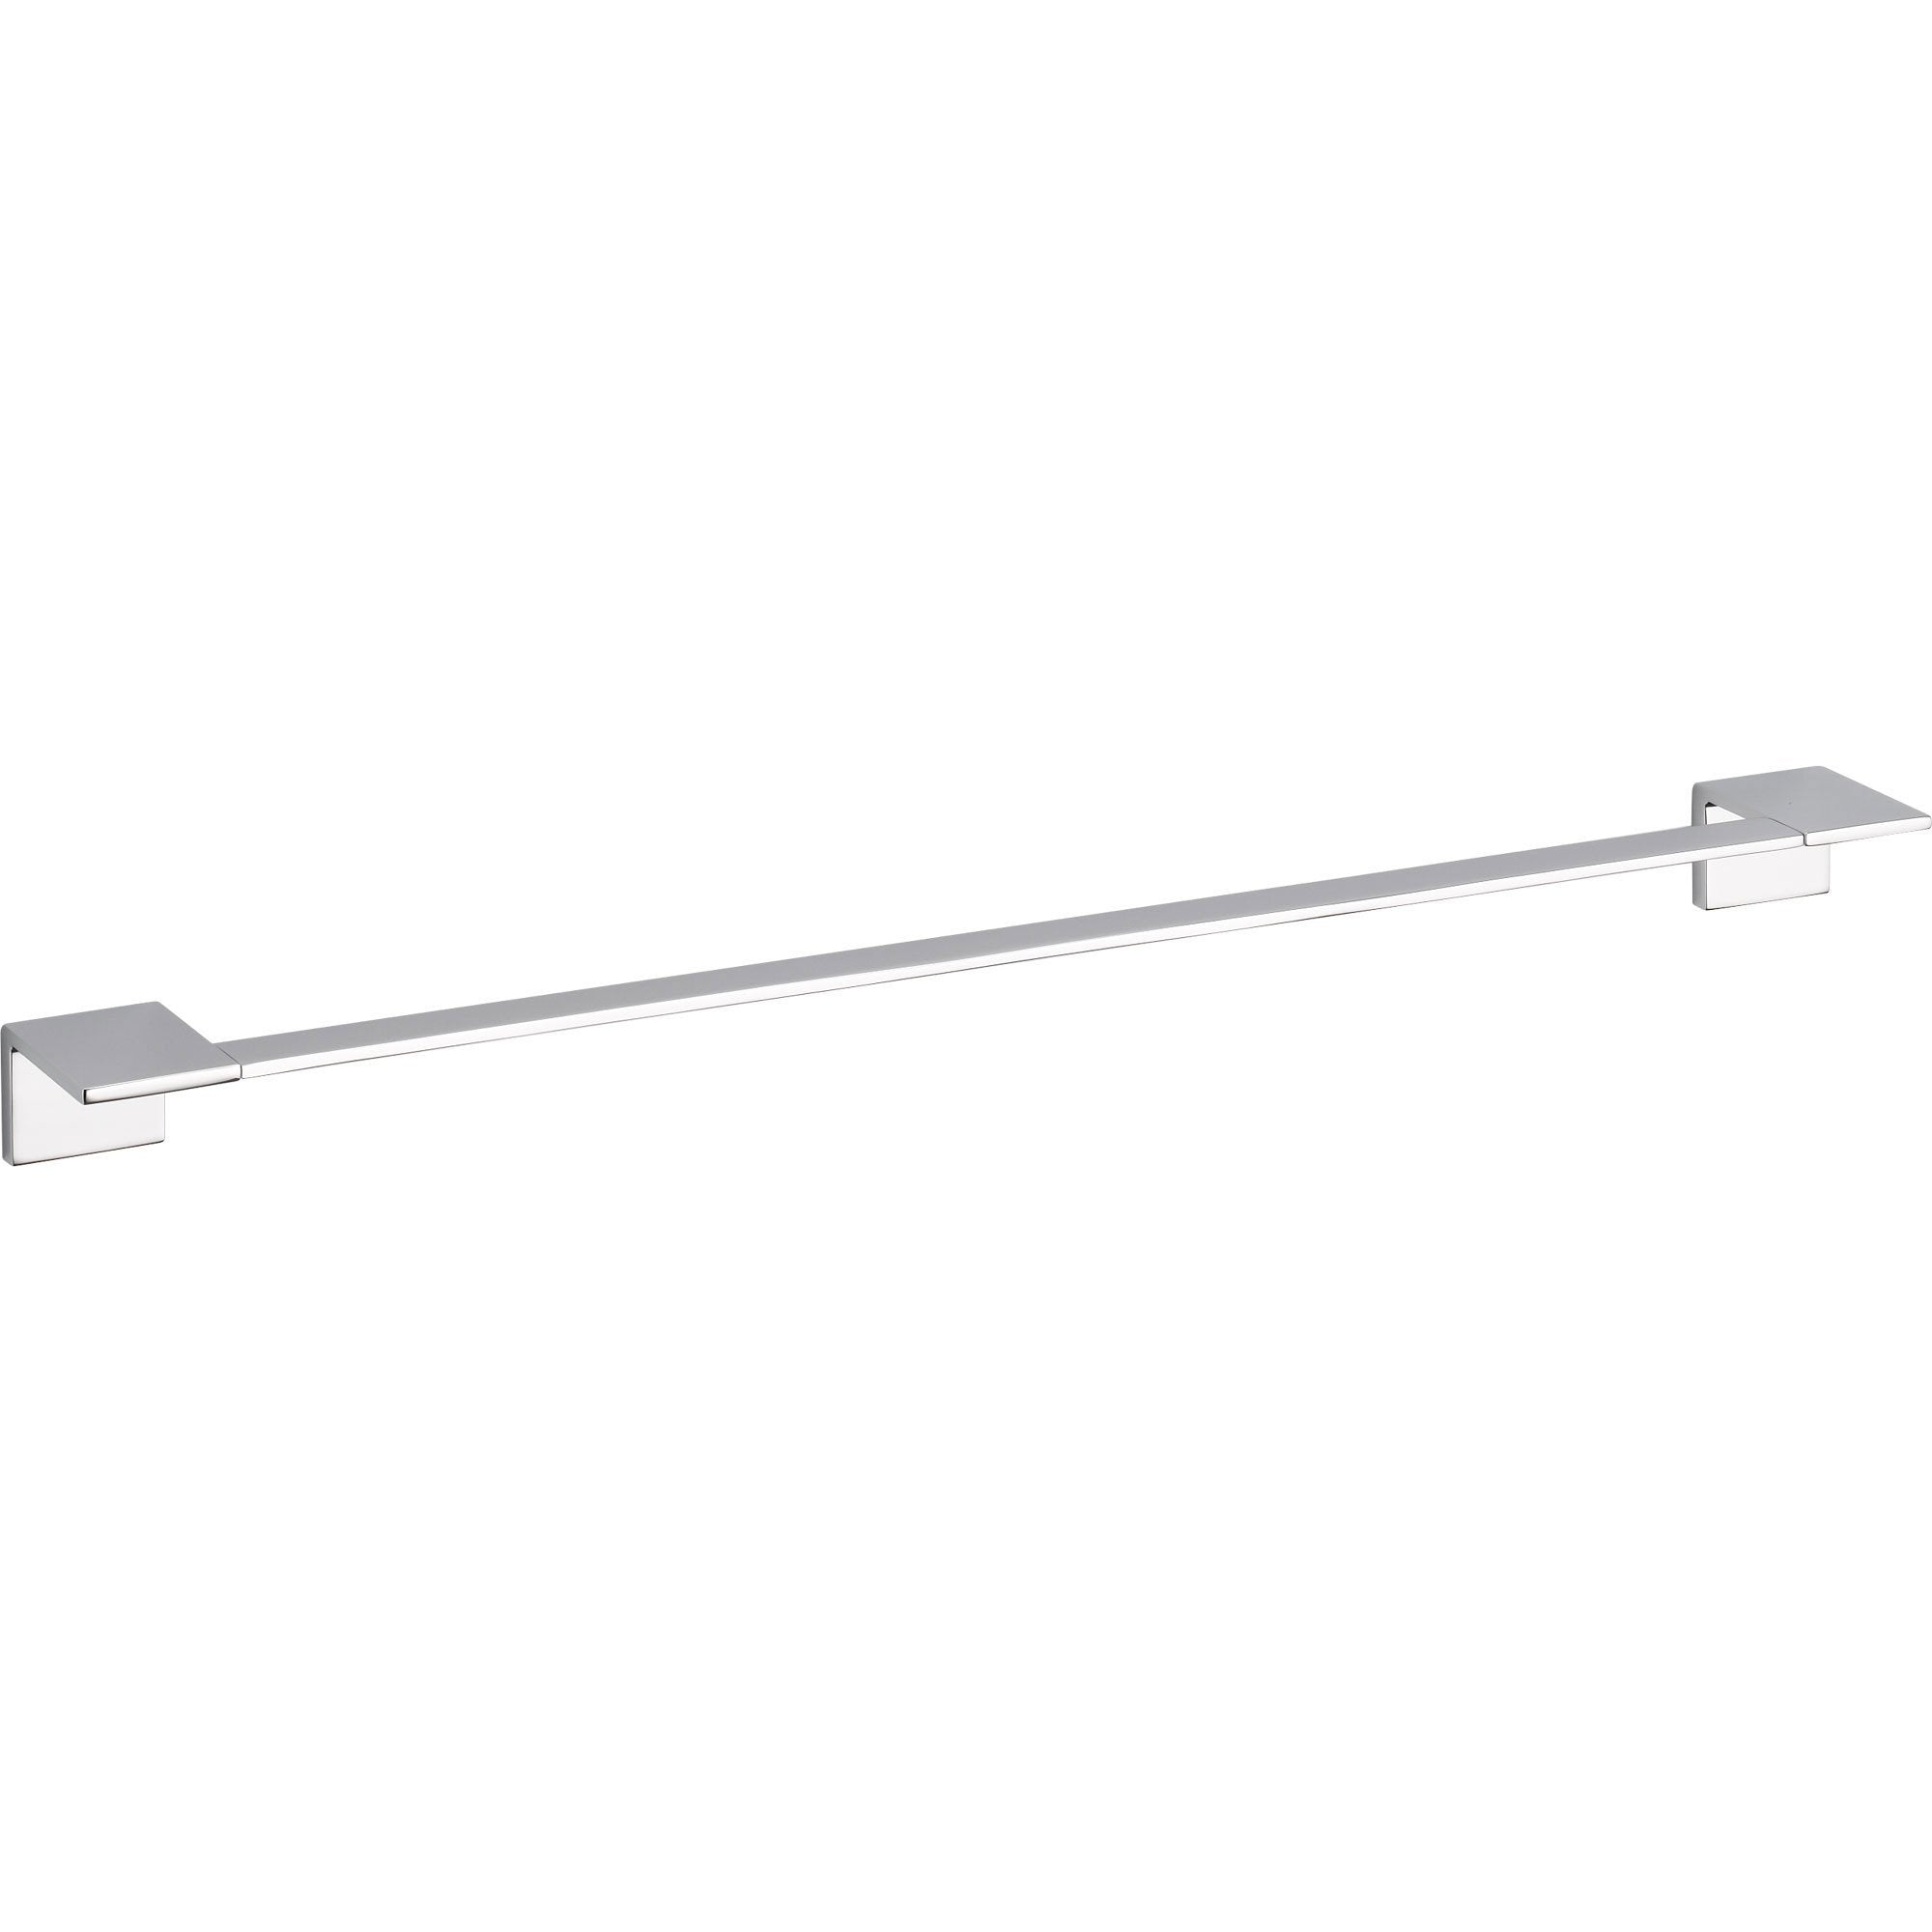 Delta Vero 24 inch Modern Chrome Single Towel Bar 521888